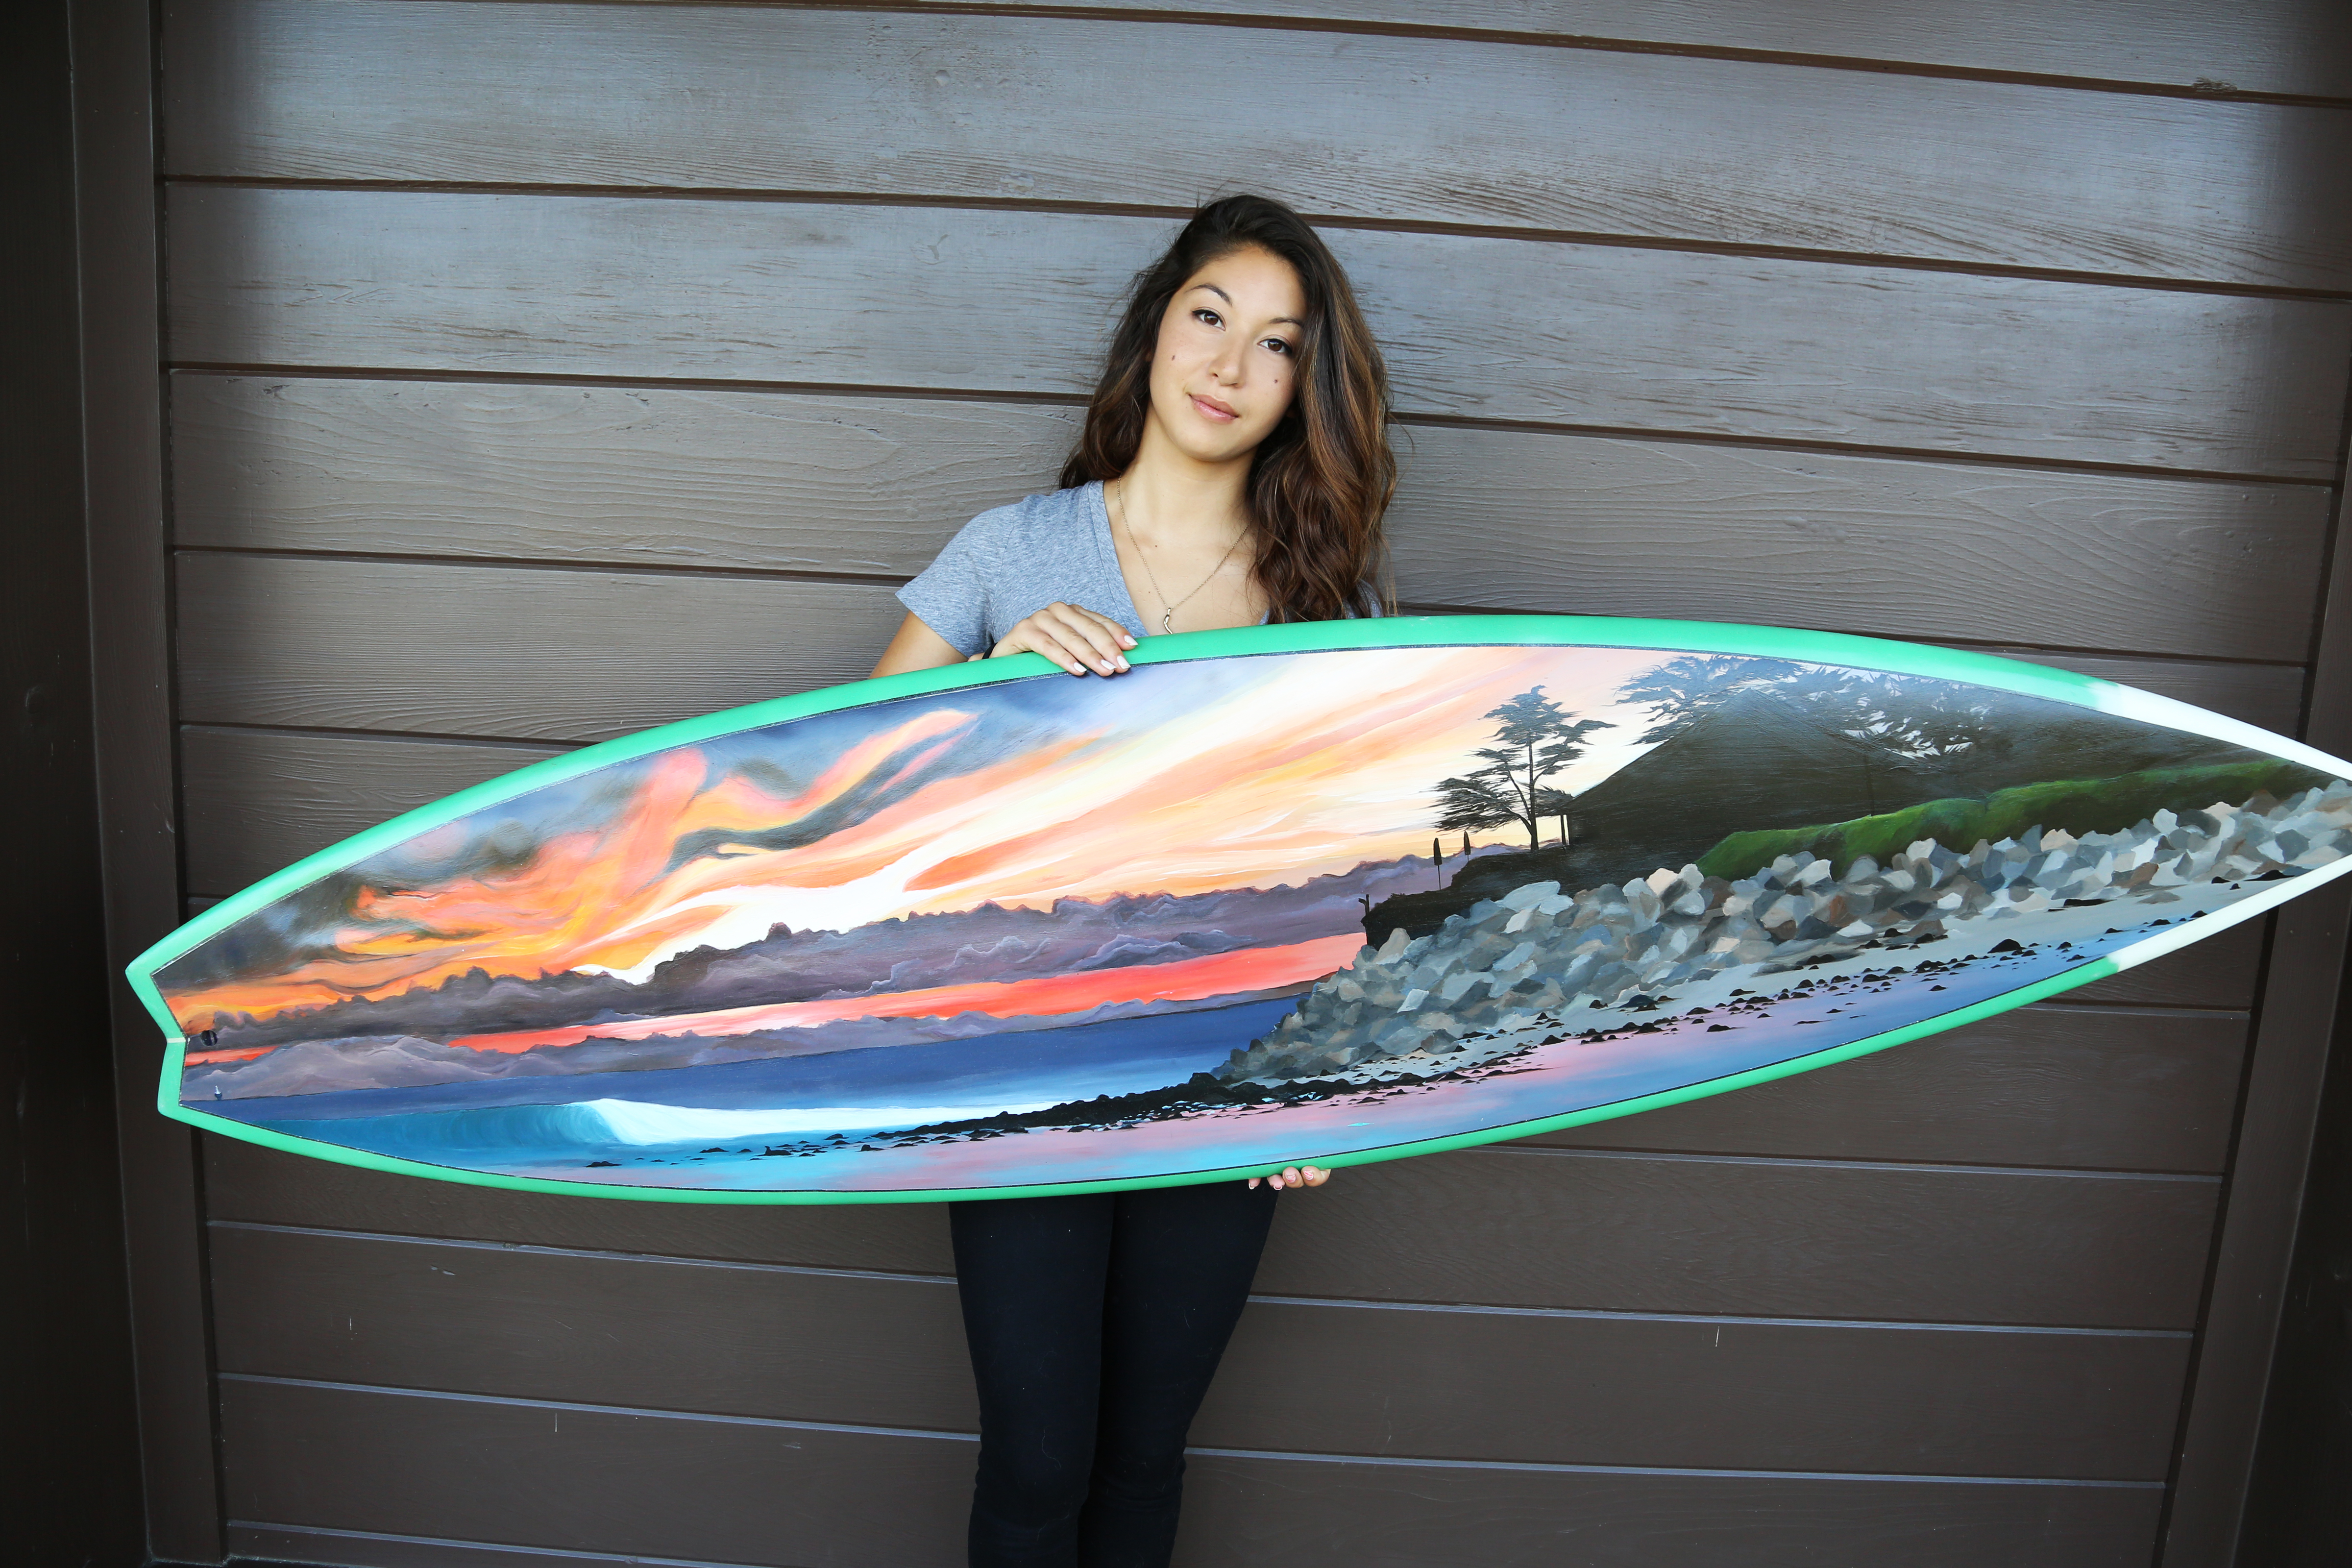 Artist Paints From A Surfboard